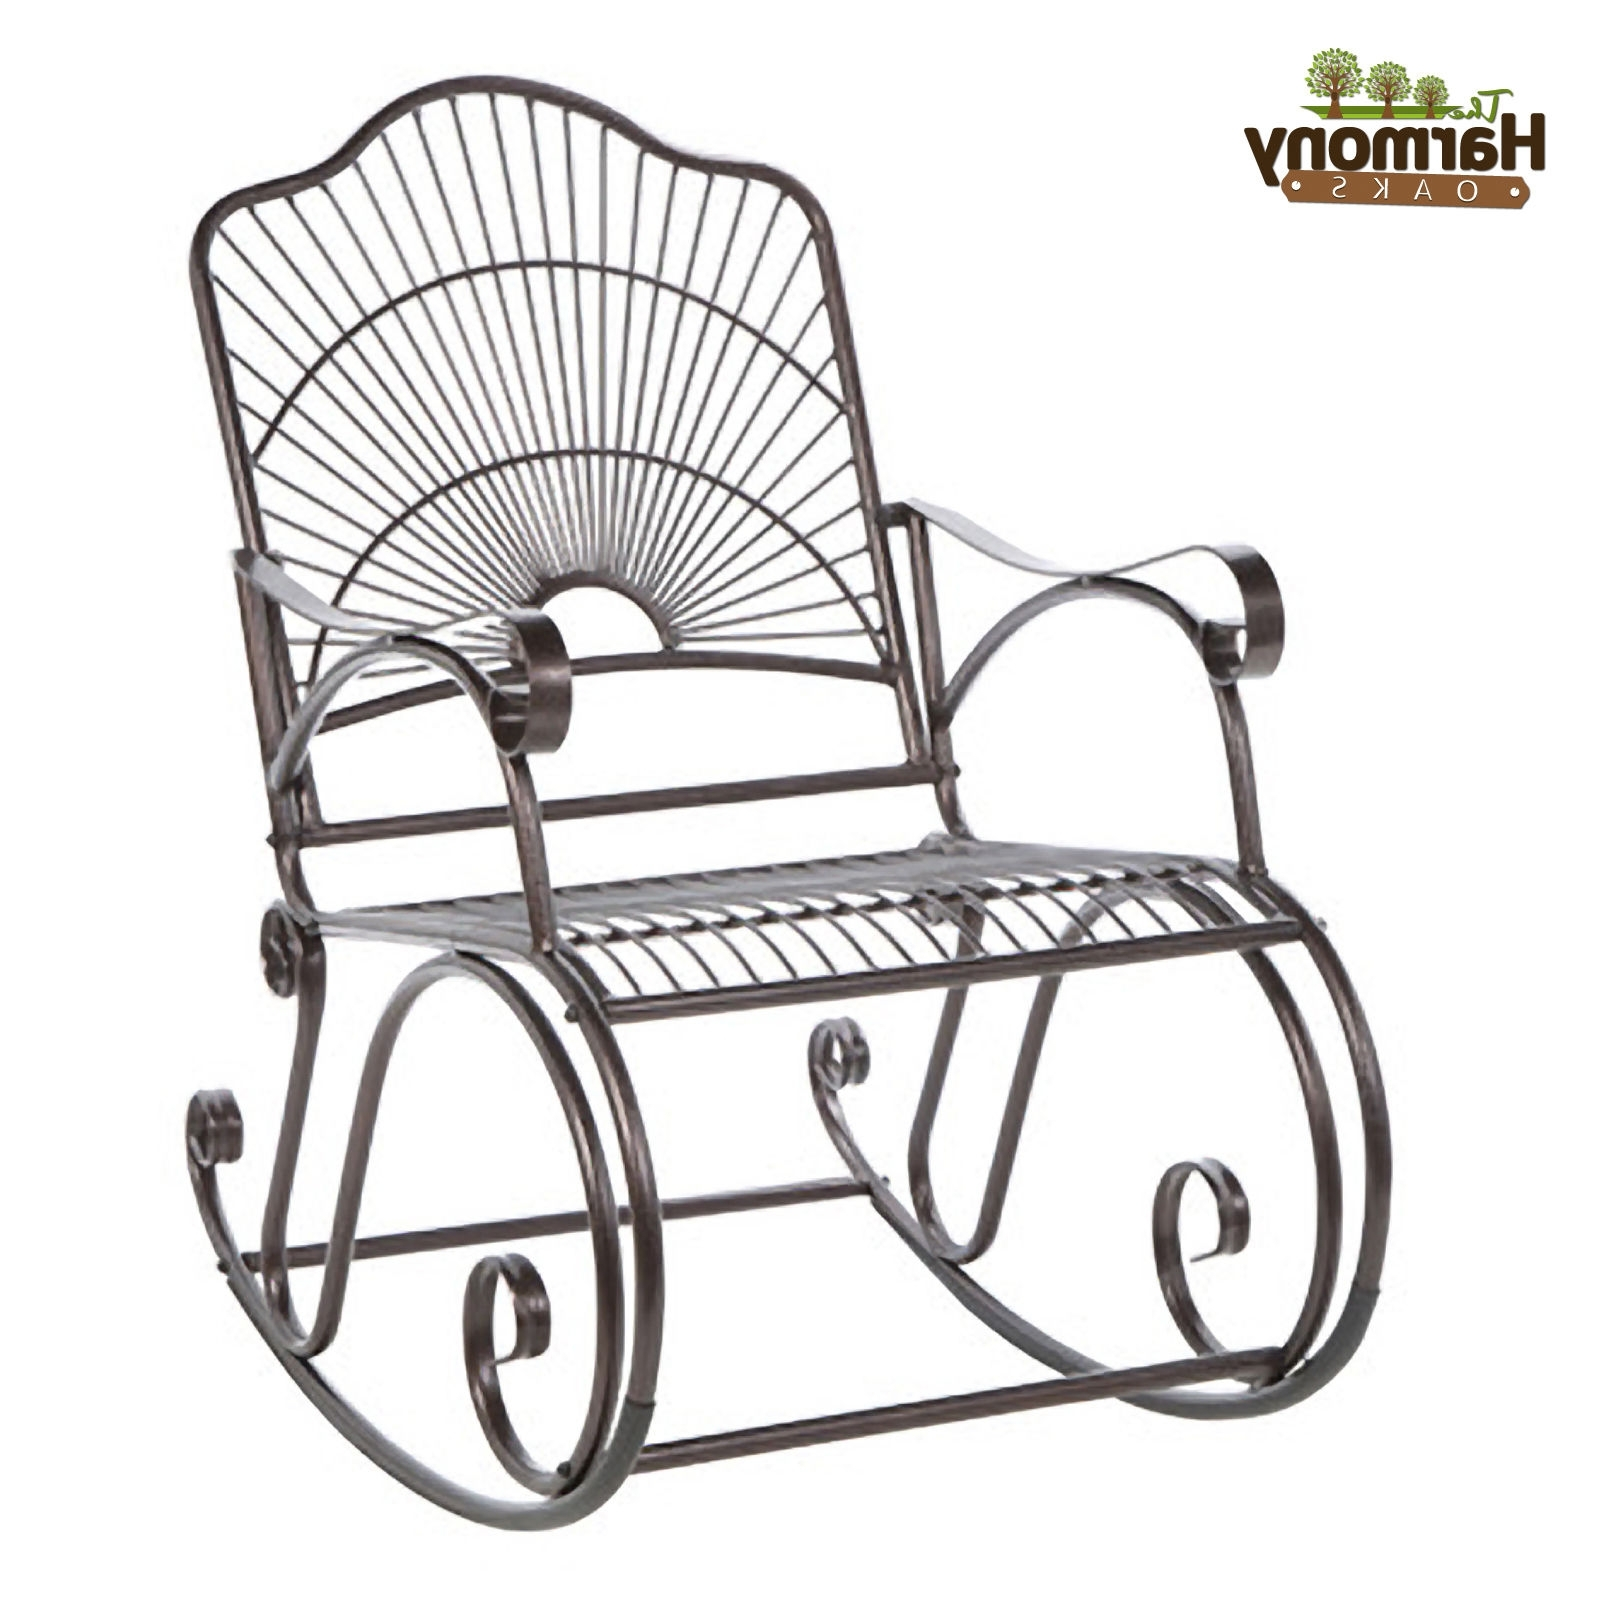 Newest Rocker Wrought Iron Outdoor Patio Porch New Furniture Wrought Iron With Regard To Wrought Iron Patio Rocking Chairs (Gallery 8 of 20)